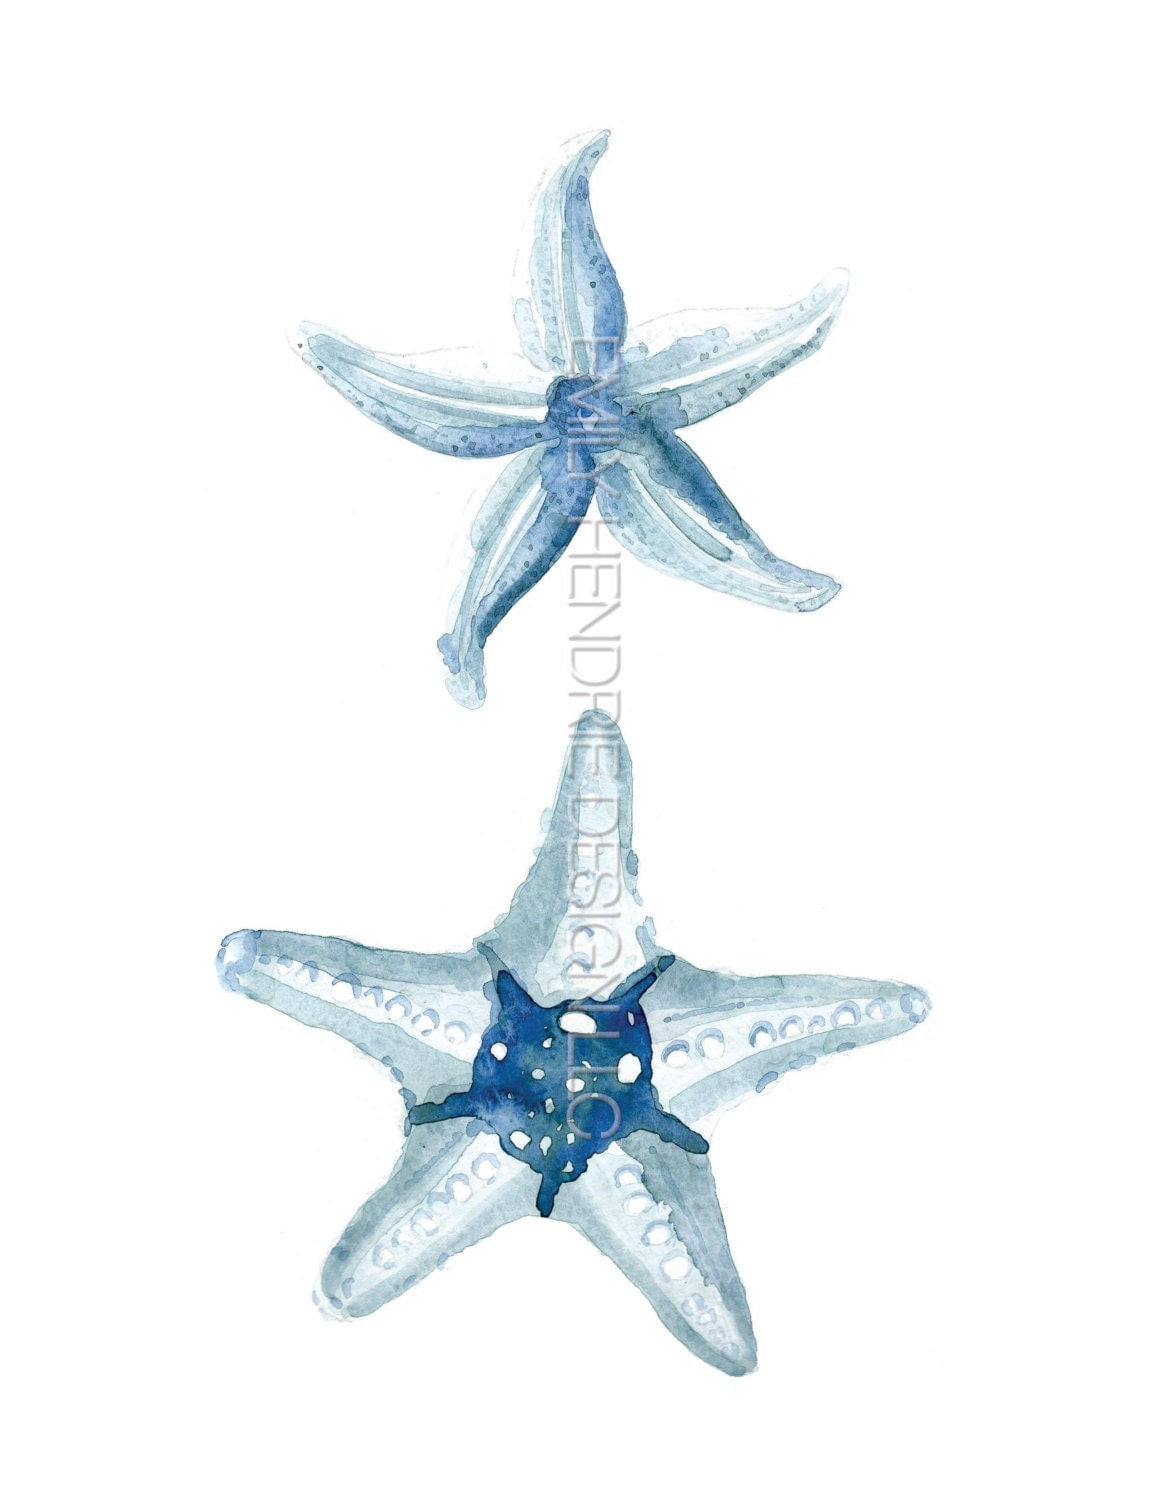 Common North Atlantic Starfish and Bumpy Starfish Watercolor